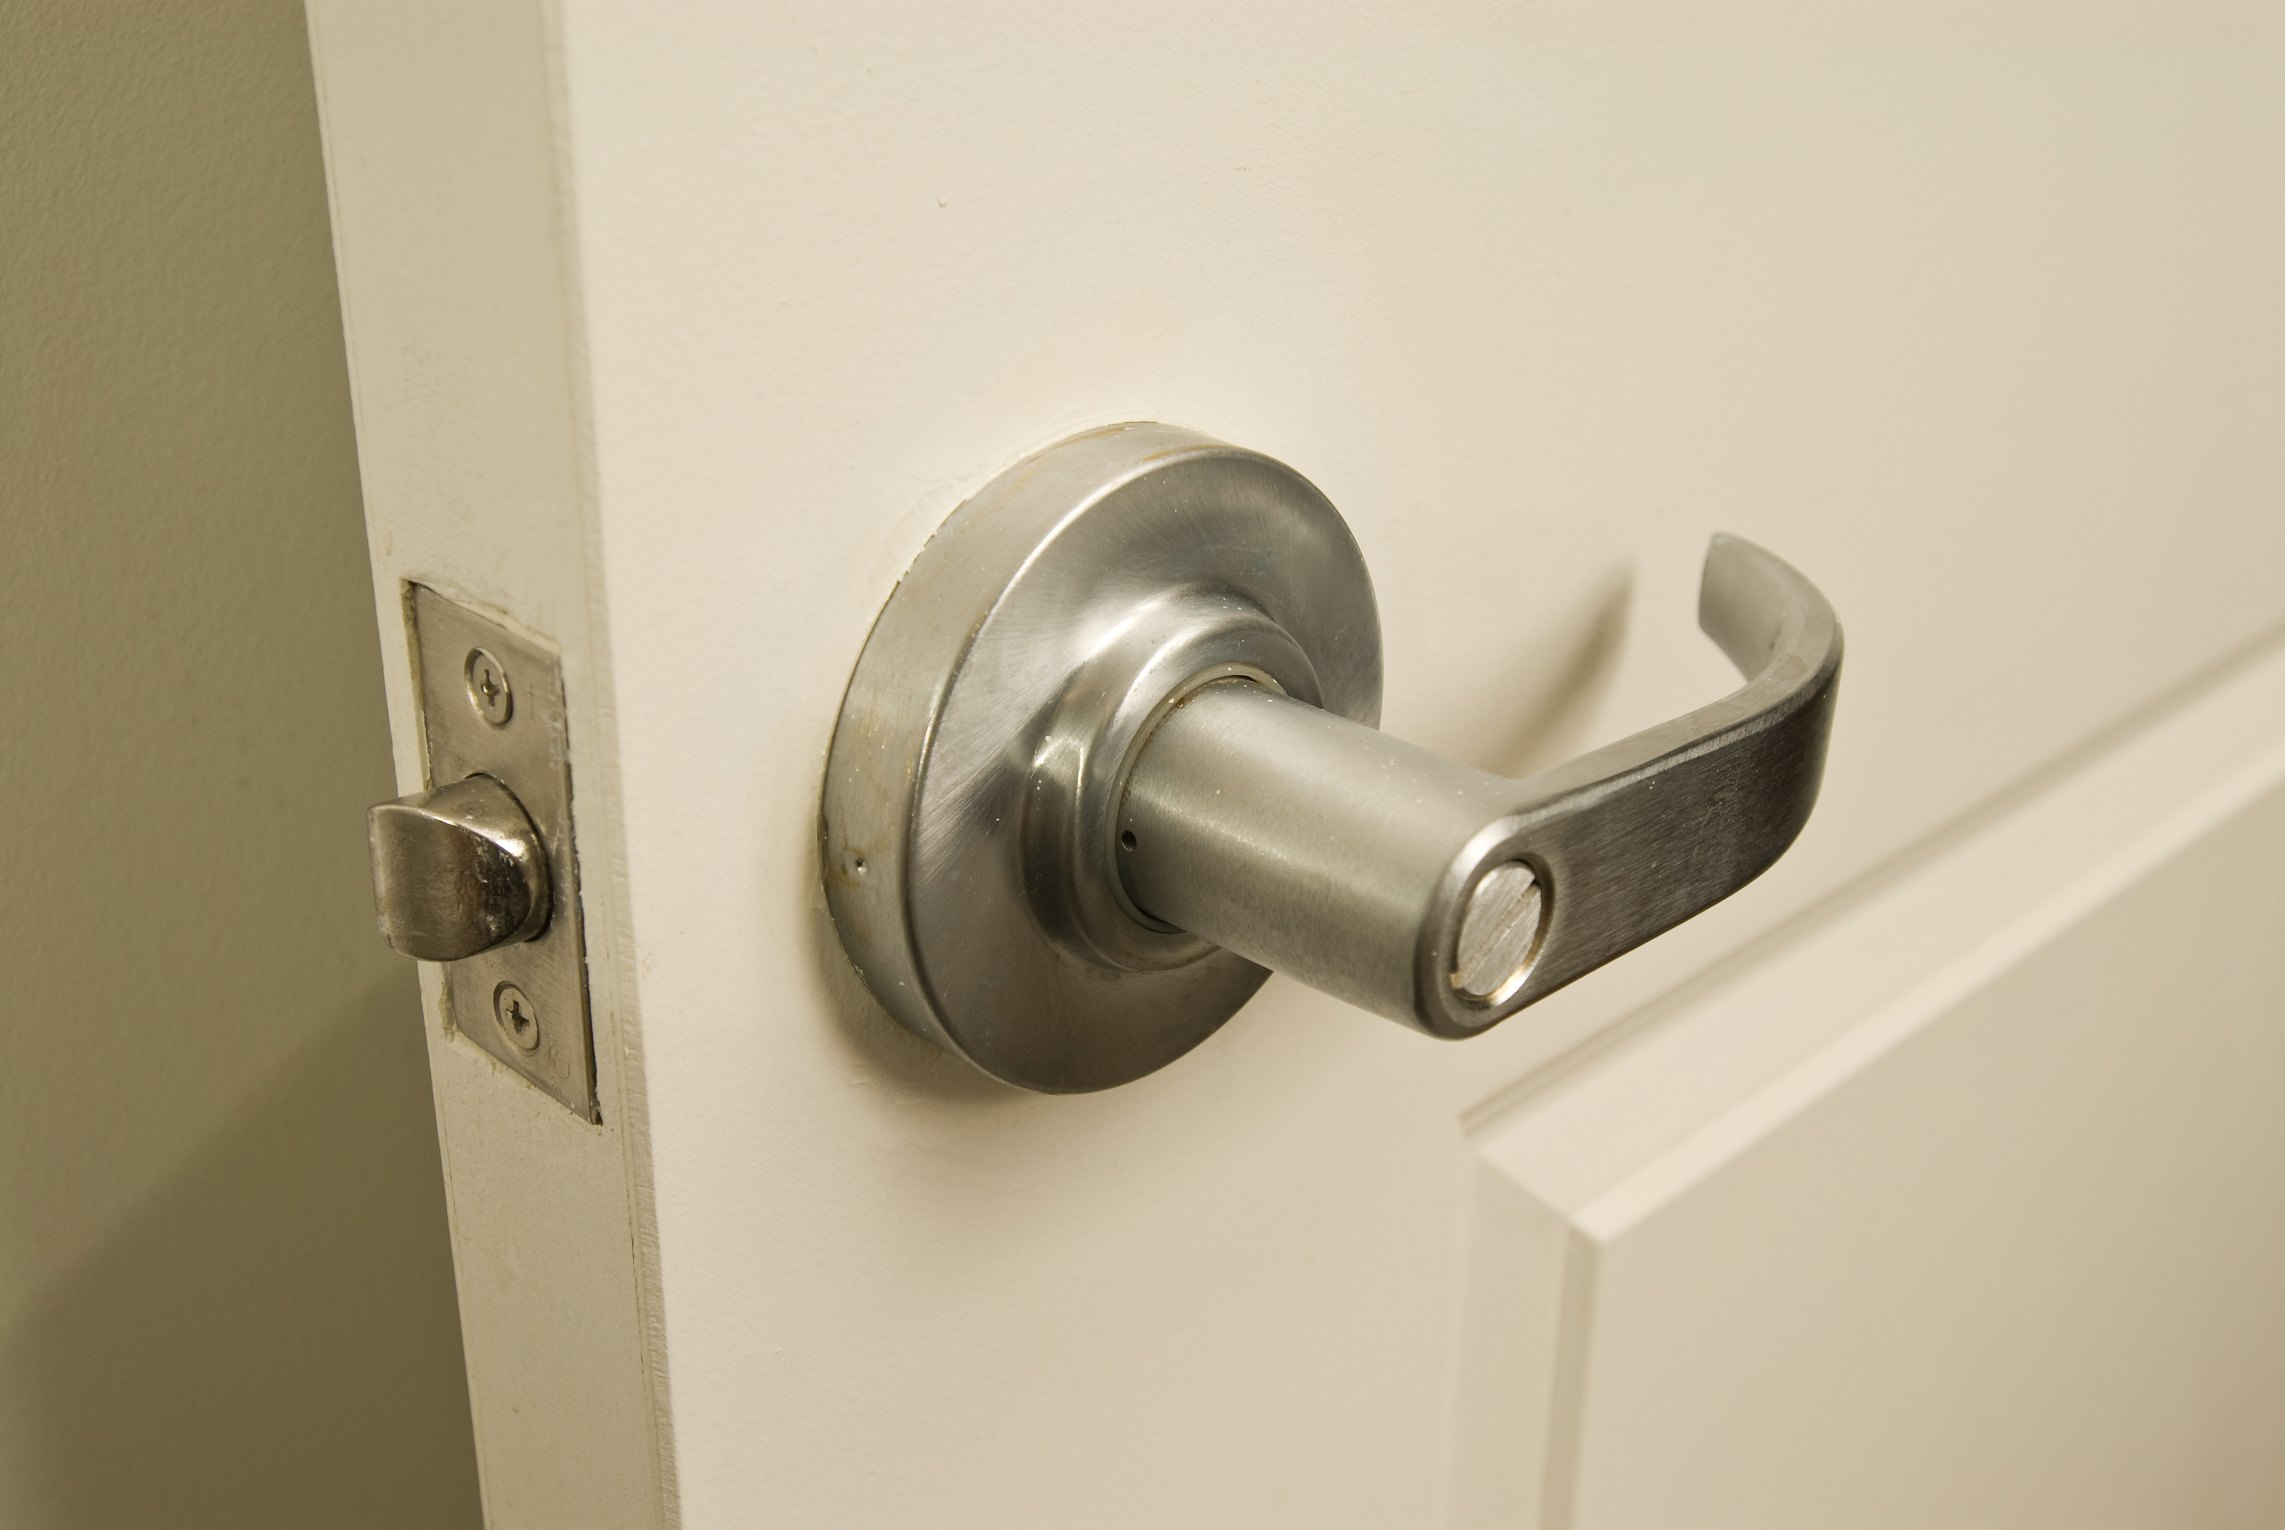 My Door Lock Is Loose | eHow